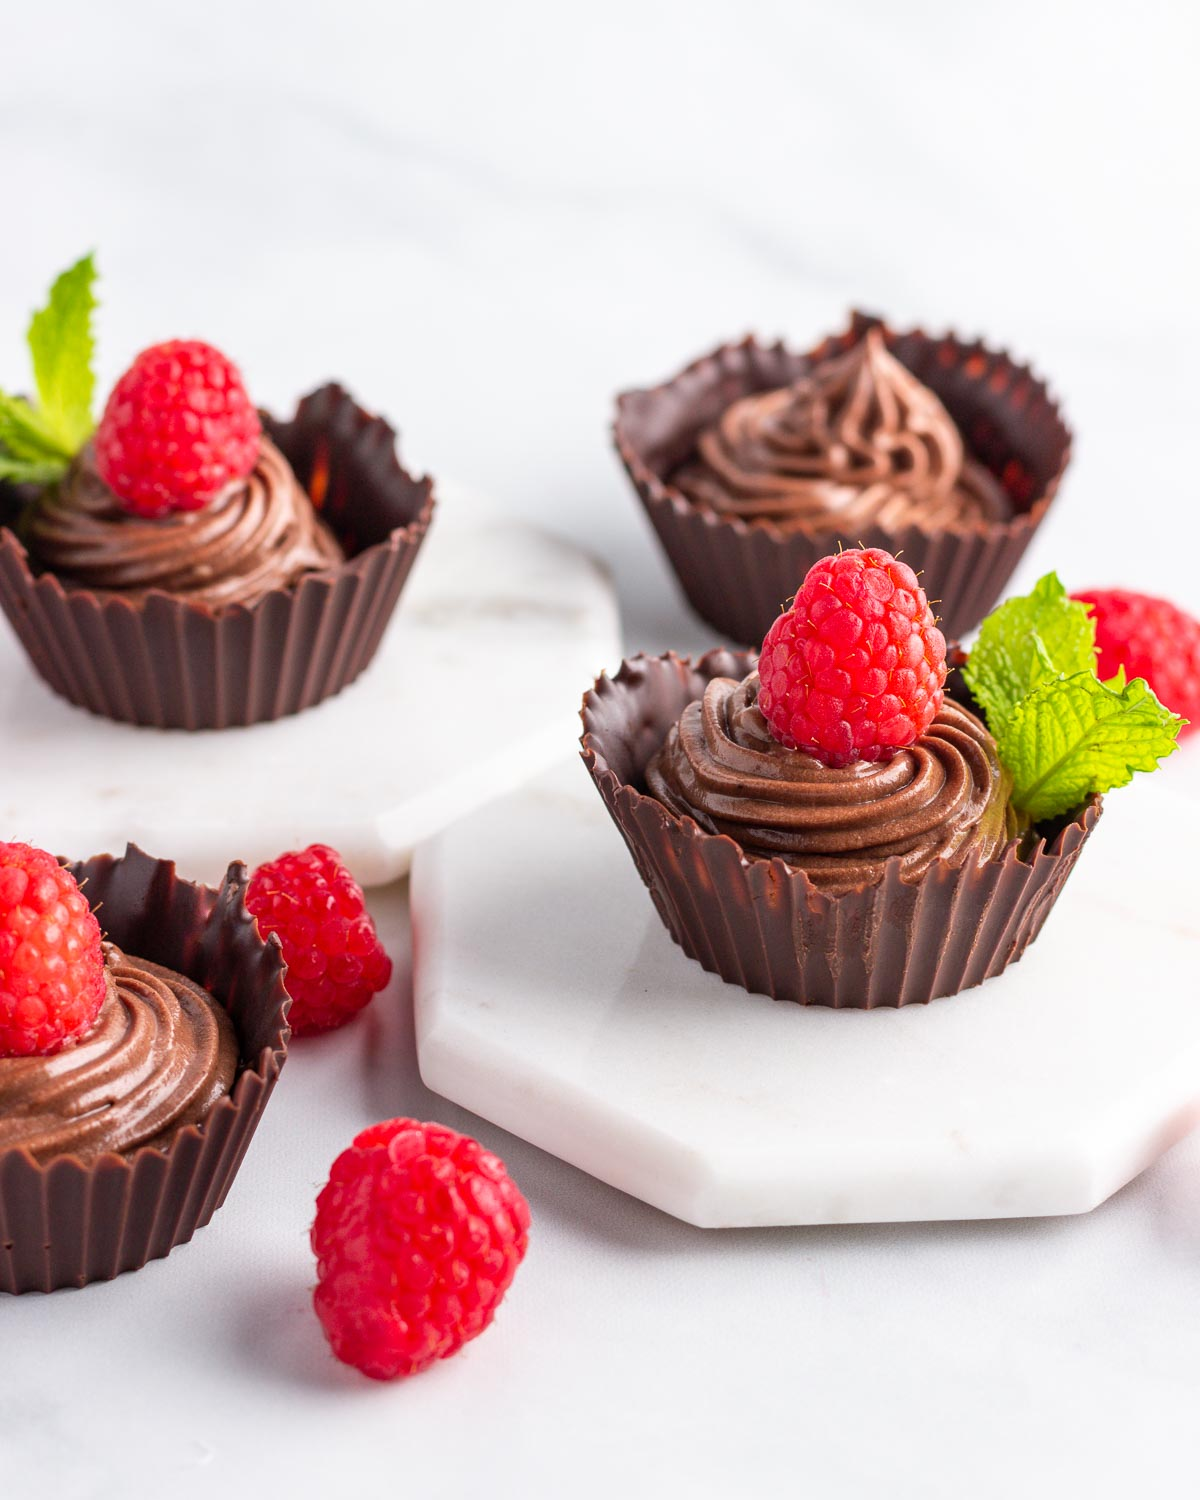 Four chocolaet cups filled with chocolate mousse and topped with a raspberry.